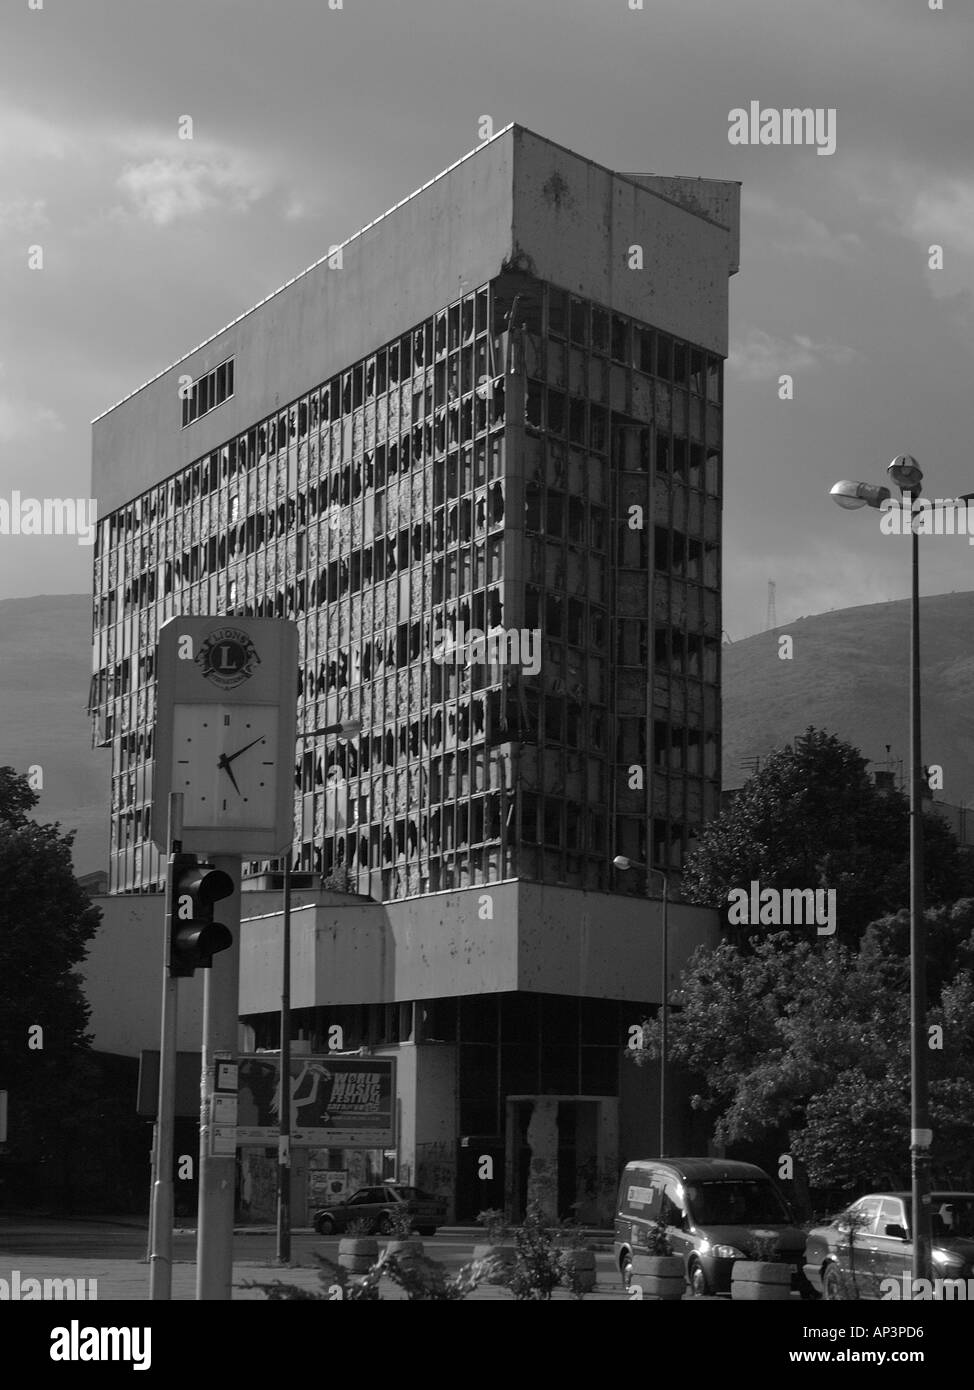 War damaged building in the Bosnian town of Mostar Stock Photo